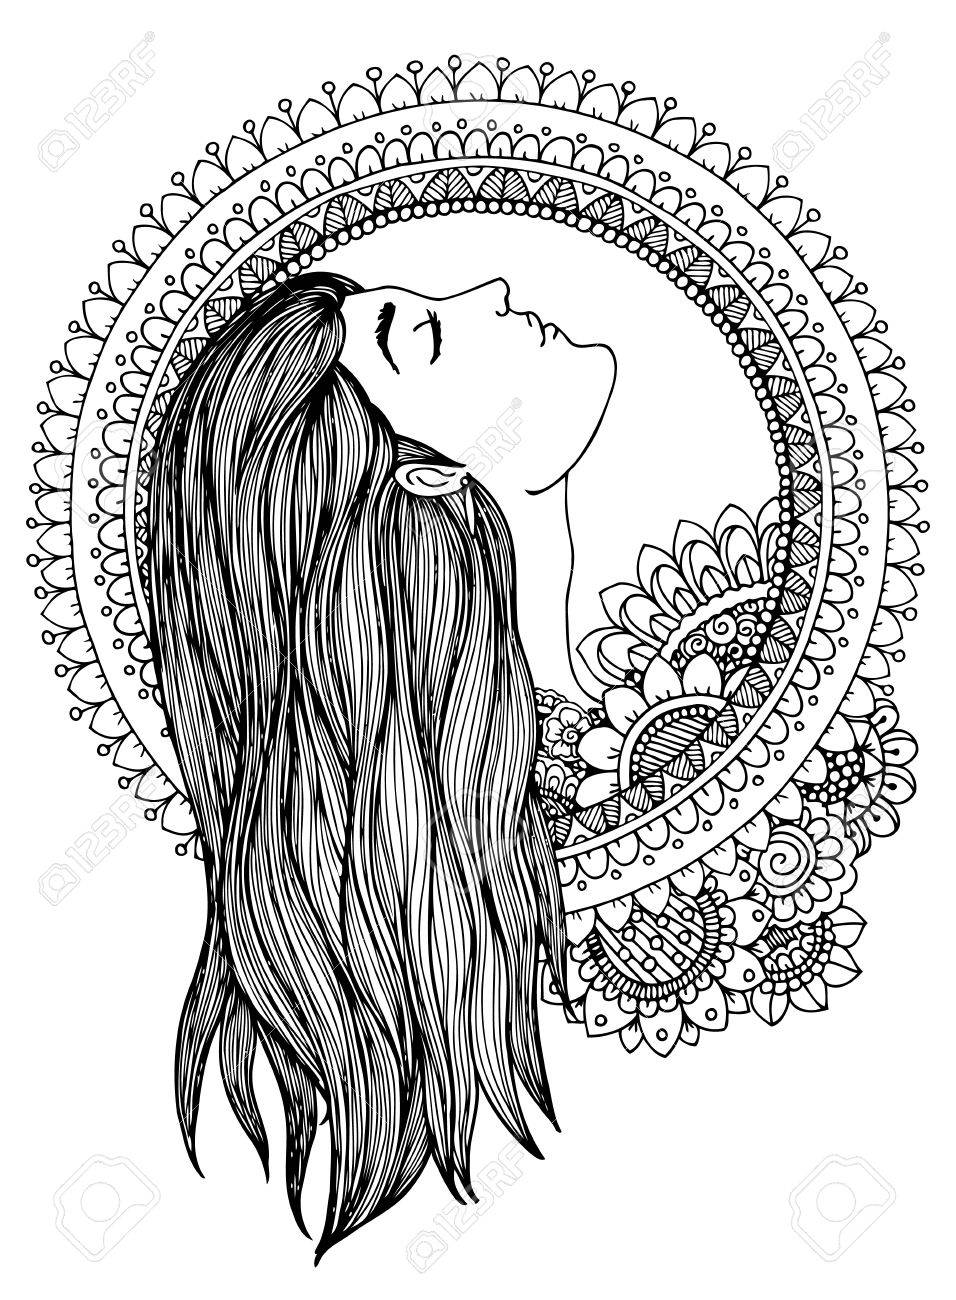 956x1300 Illustration Zentangle Girl In The Floral Frame. Doodle Drawing